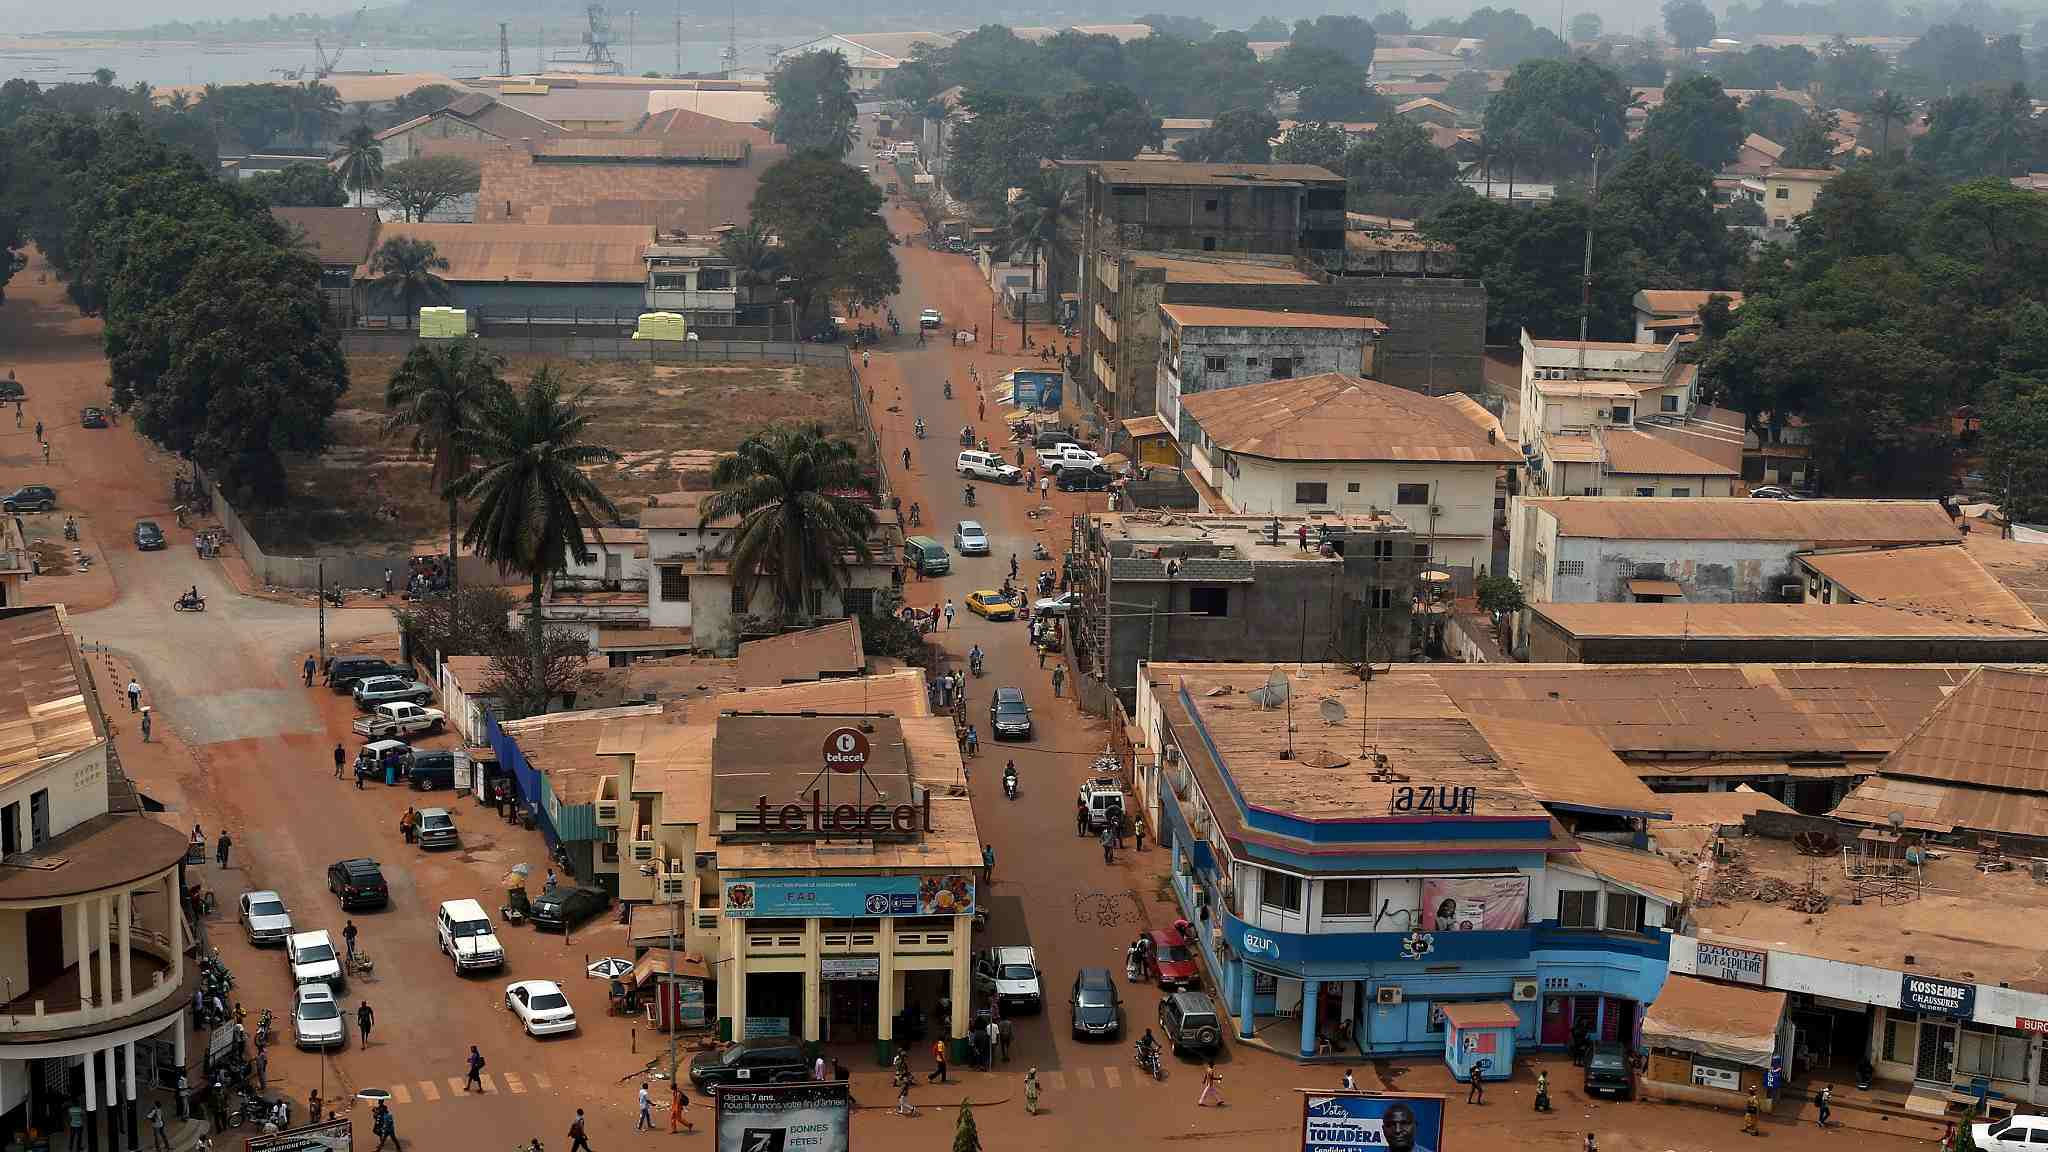 13 arrested over murder of Chinese nationals in Central African Republic